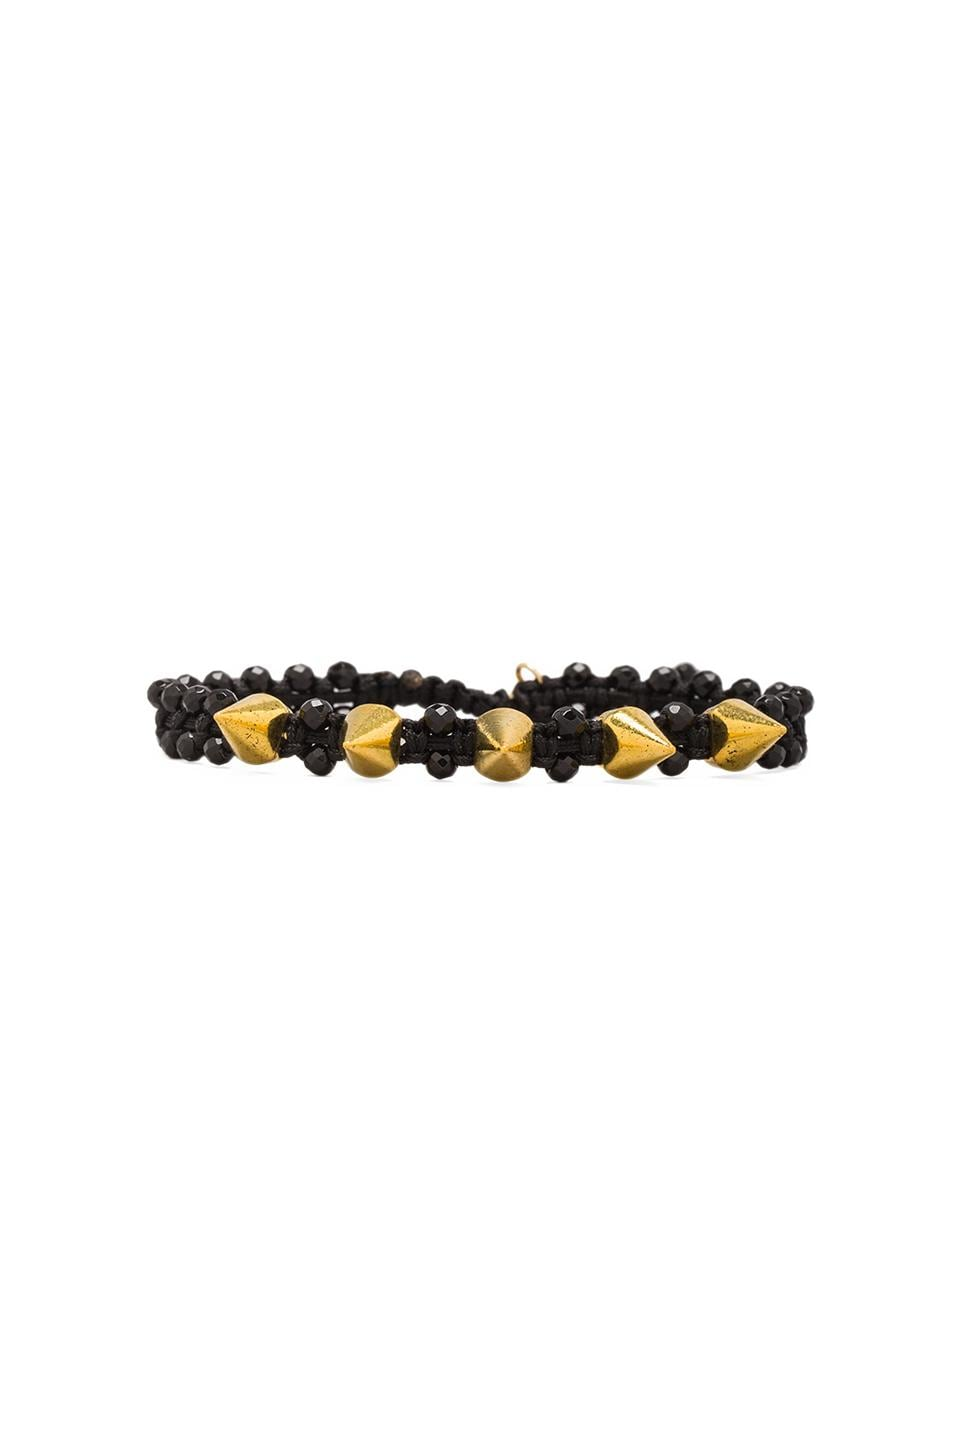 CHAN LUU Spike Bracelet in Onyx/Black